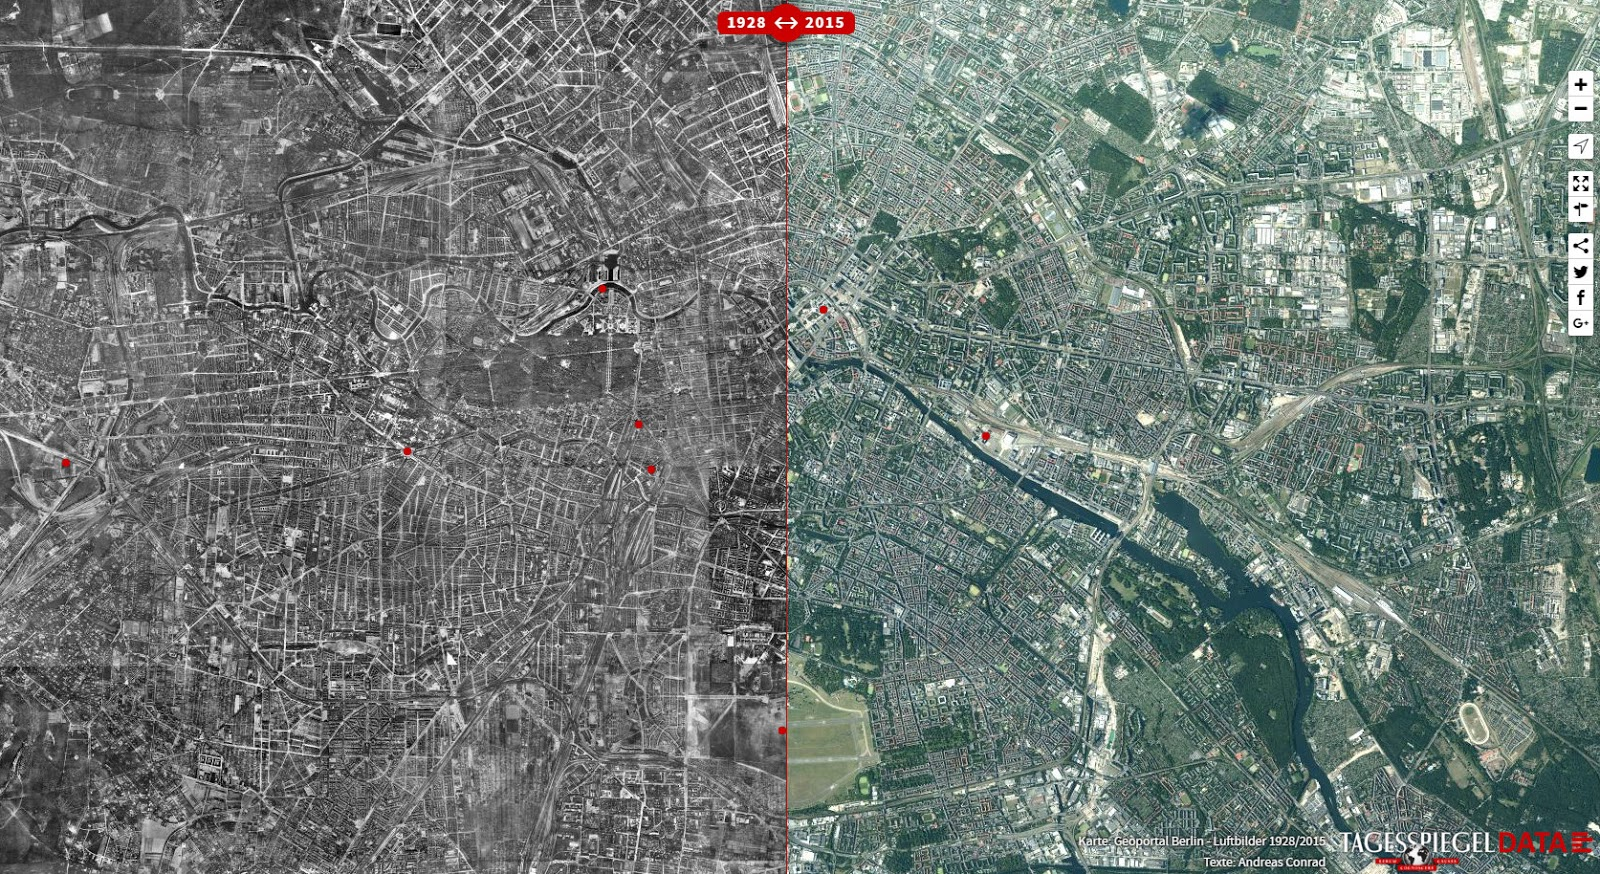 Berlin in 1928 and Today